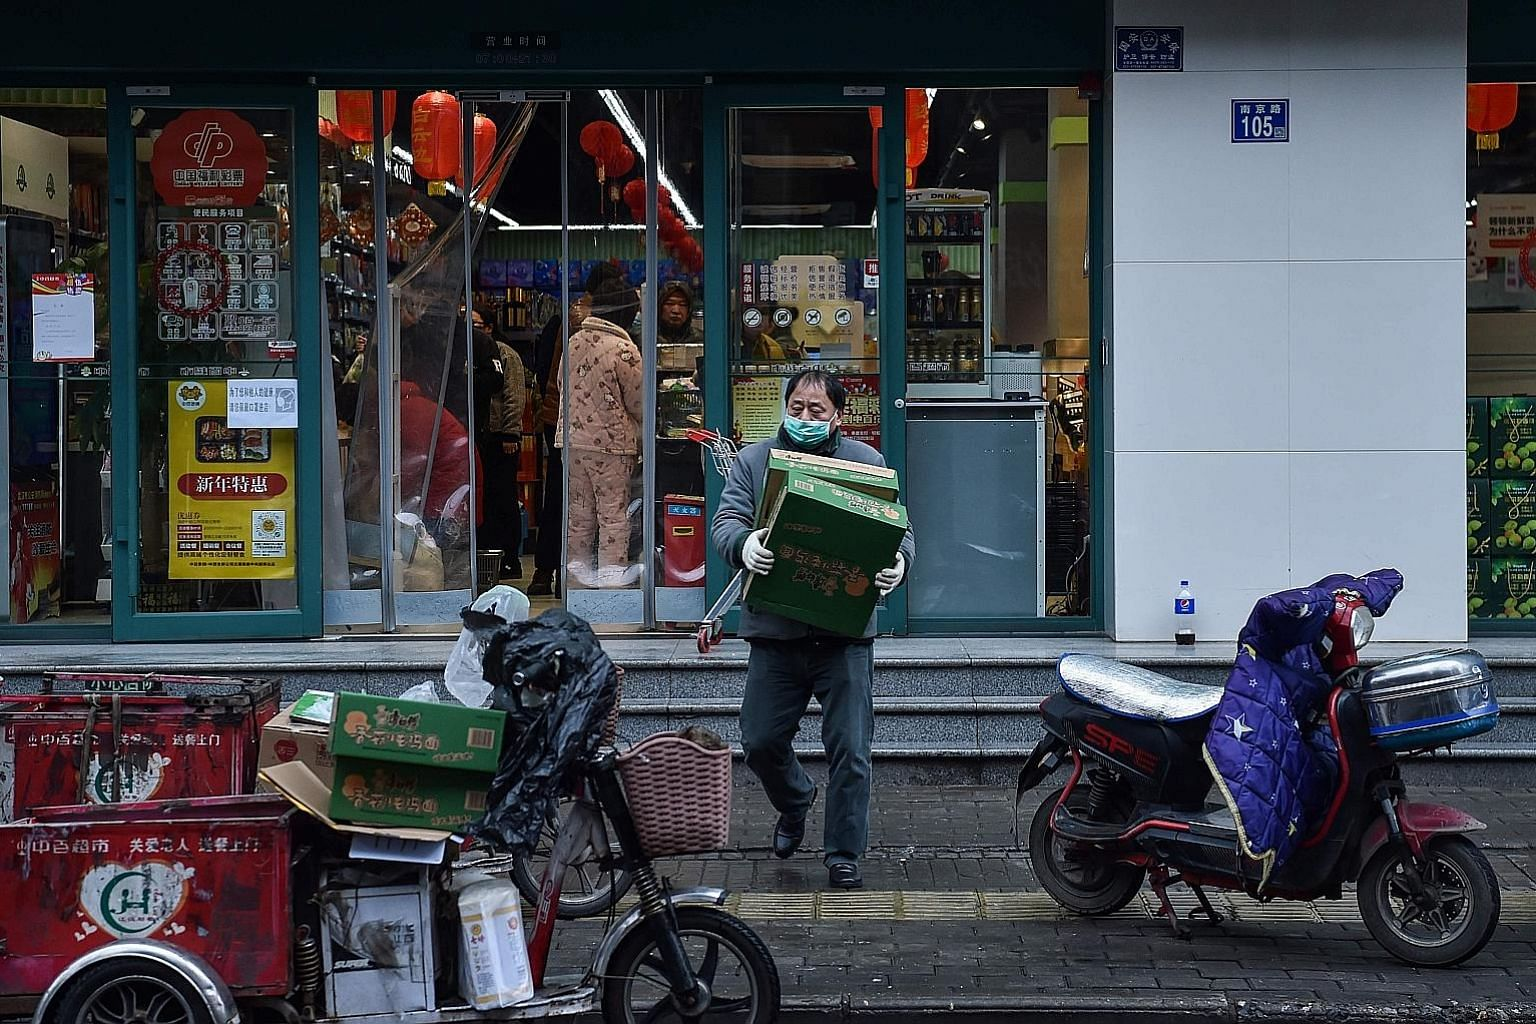 A man wearing a face mask at a market in Wuhan on Sunday. Nearly 40 million people have been under lockdown in and around Wuhan, the epicentre of the outbreak and the capital of Hubei province, just before the Chinese New Year holidays.